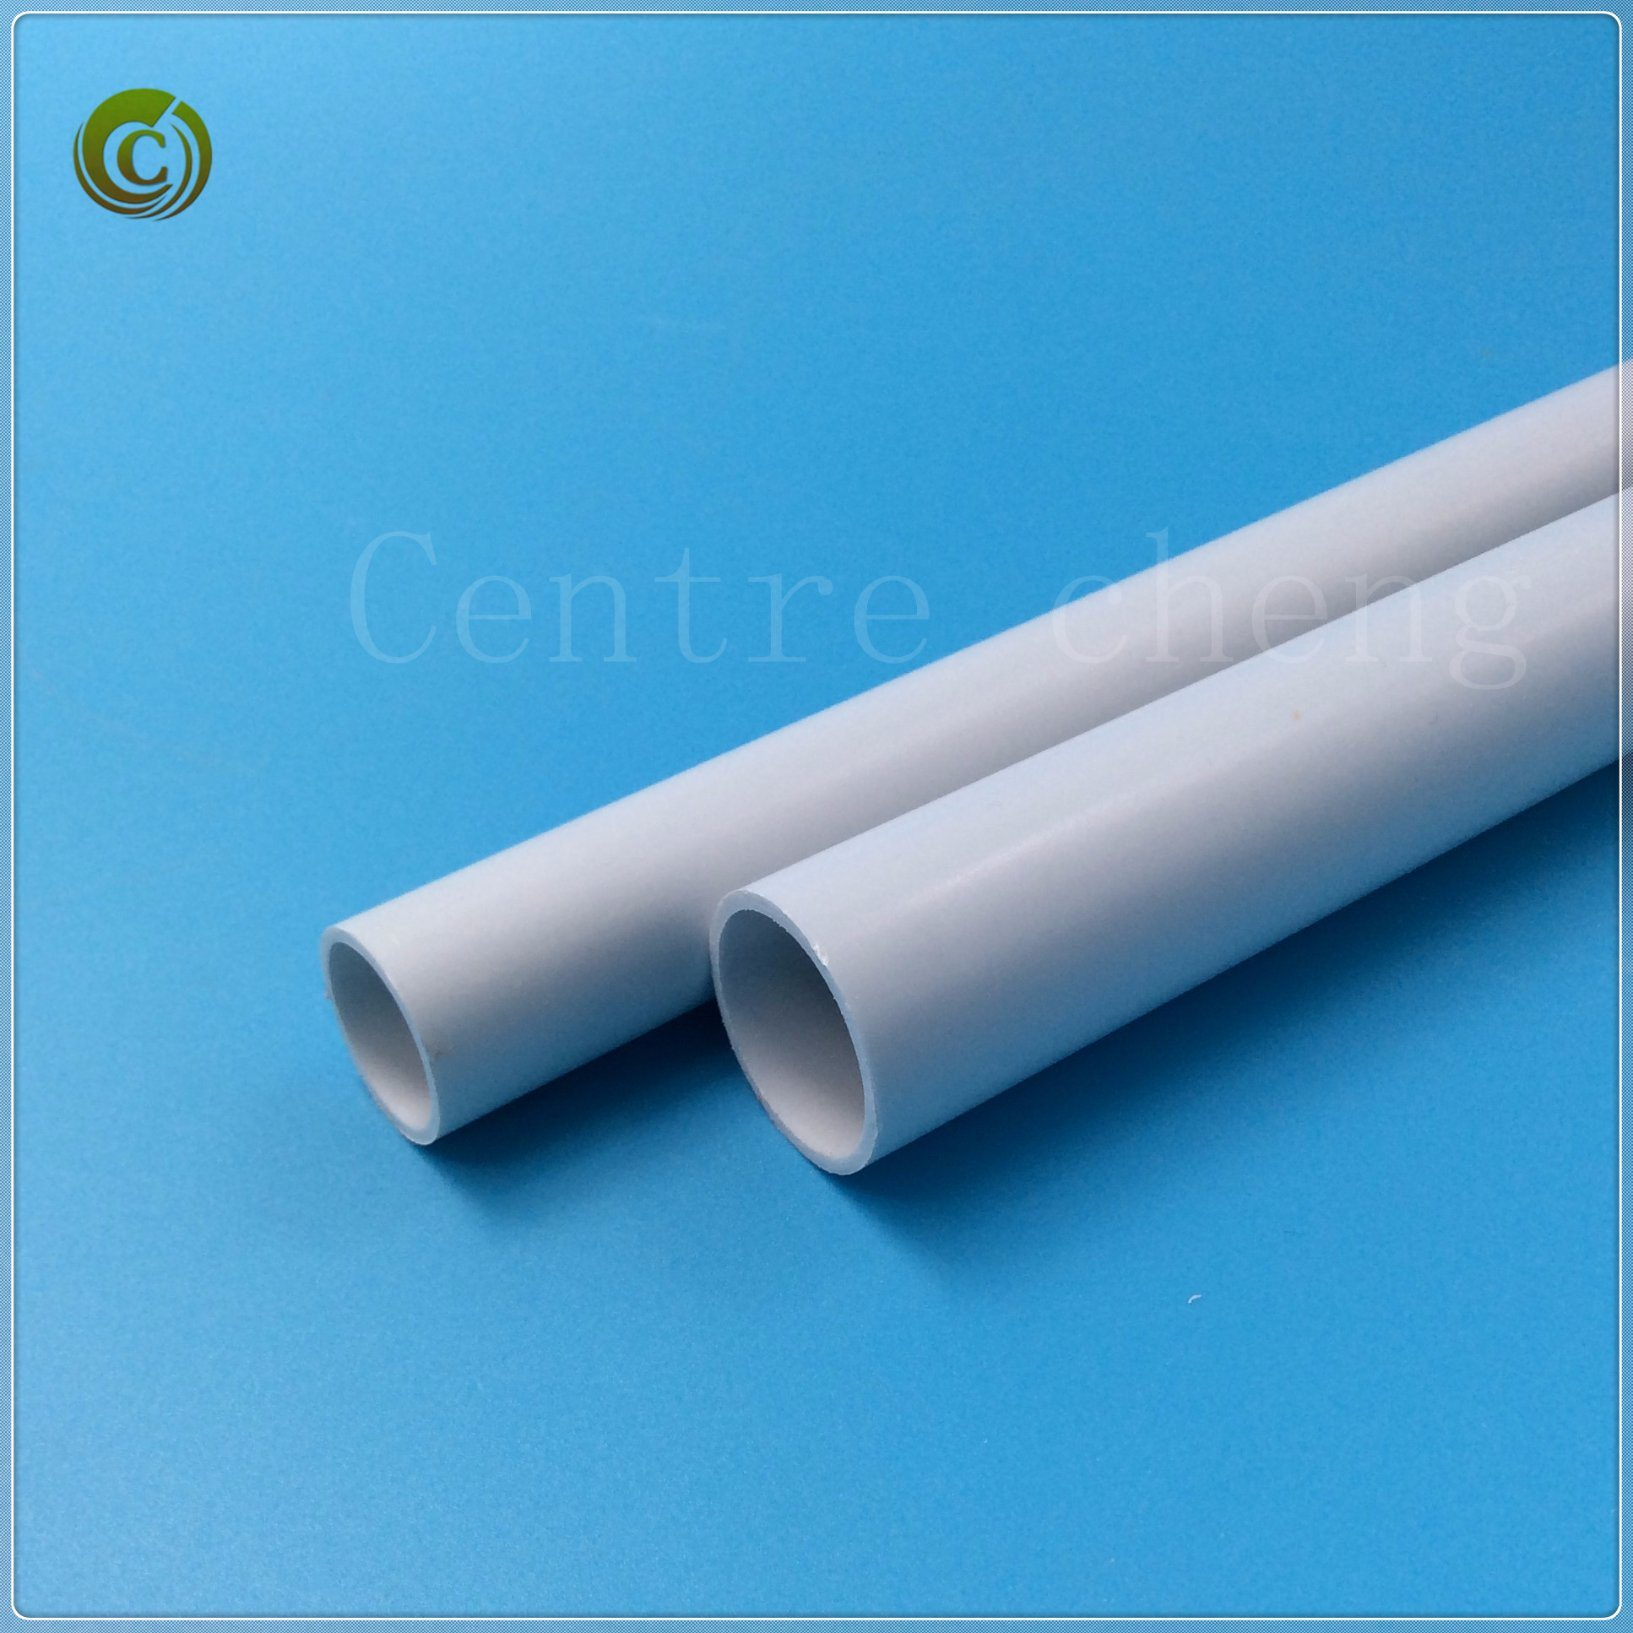 china 2018 16mmaa cable duct electric wiring conduit pipe pvc cable rh centrecheng en made in china com flexible plastic wiring conduit plastic cable conduit flexible